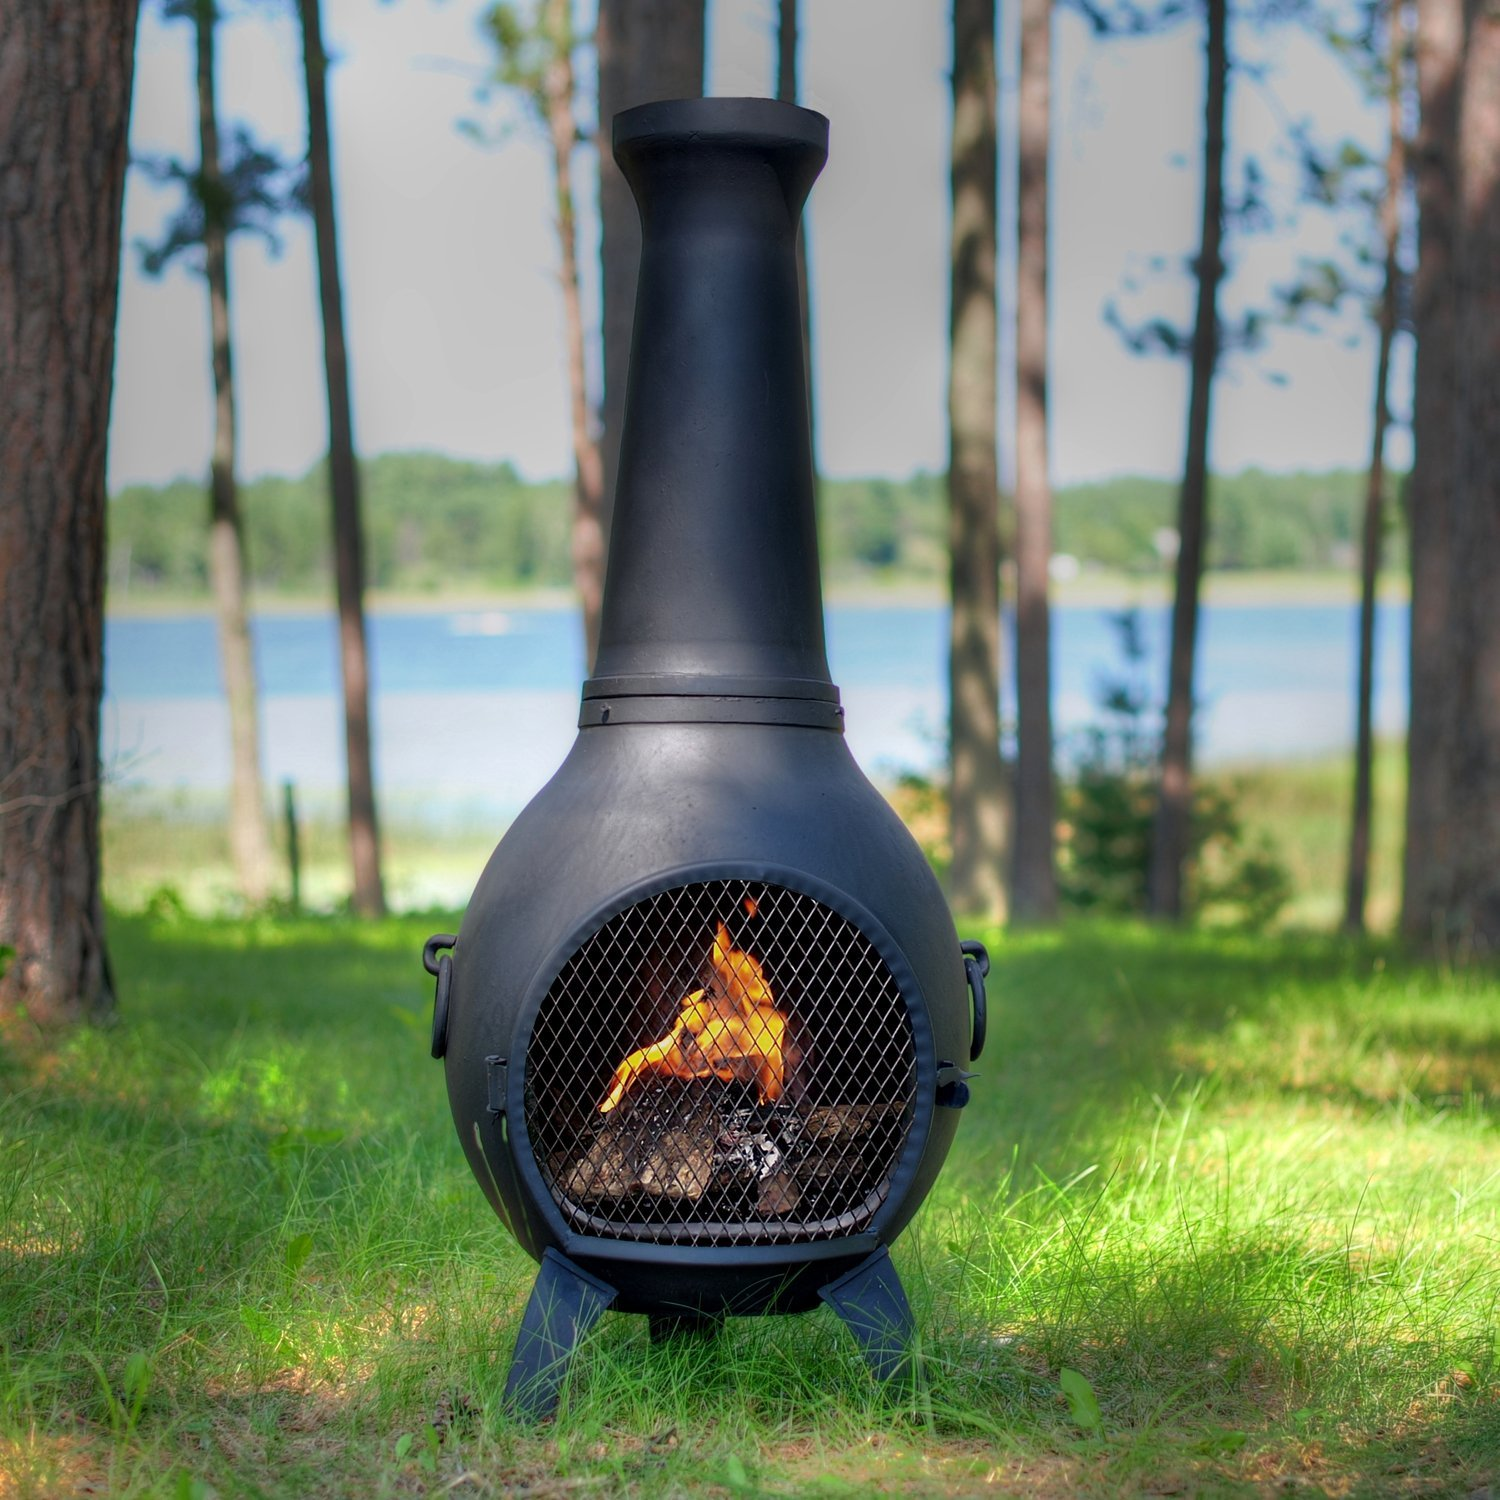 Lit Your Outdoor Space Nuance with Chiminea Fire Pit for Stylish Warmer